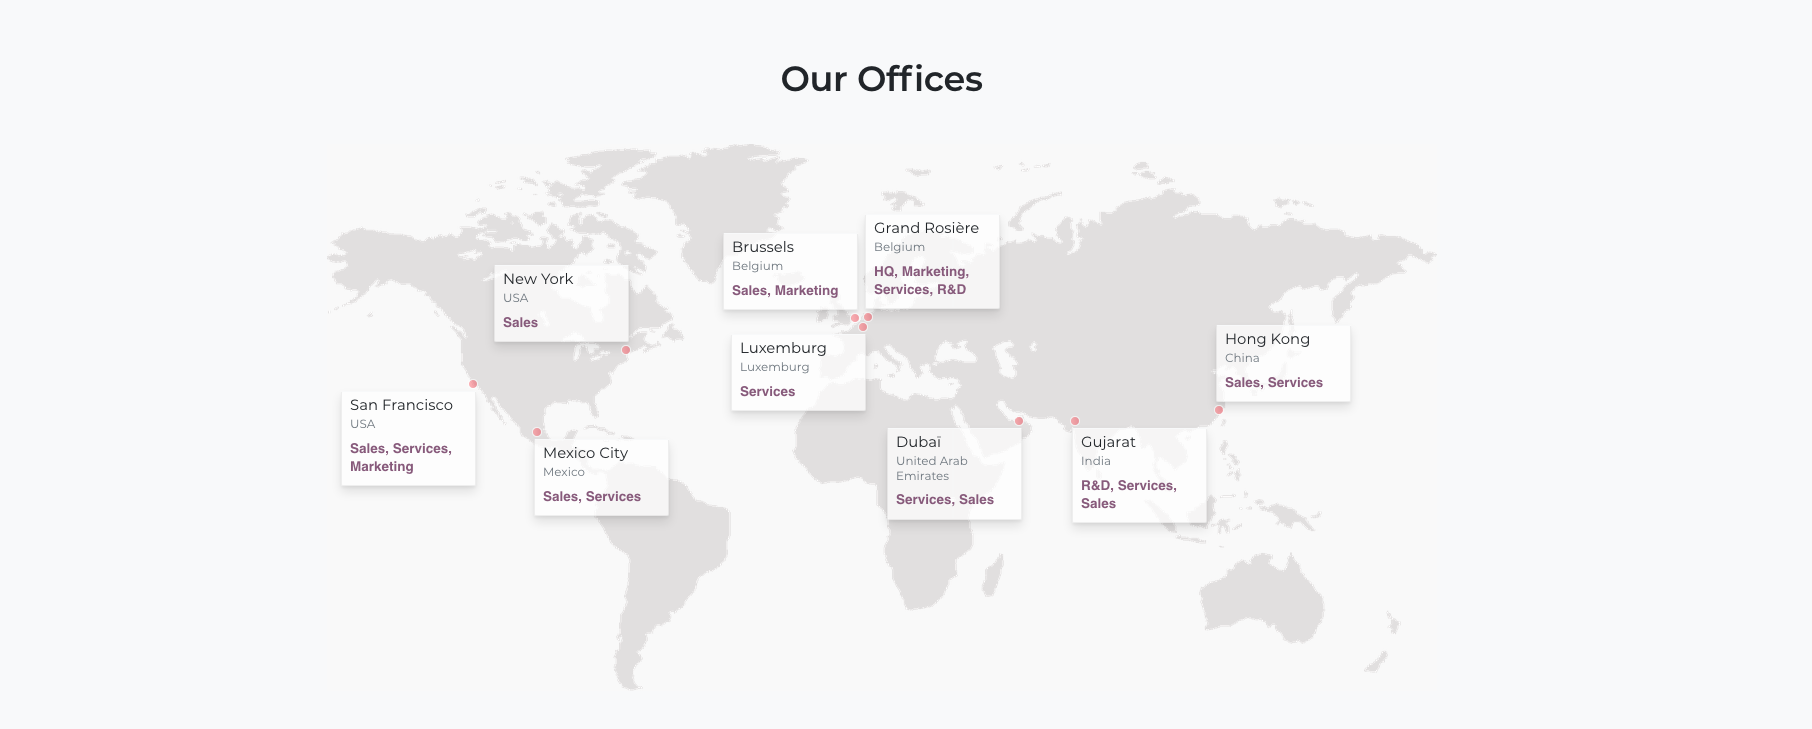 Odoo Offices - About Odoo